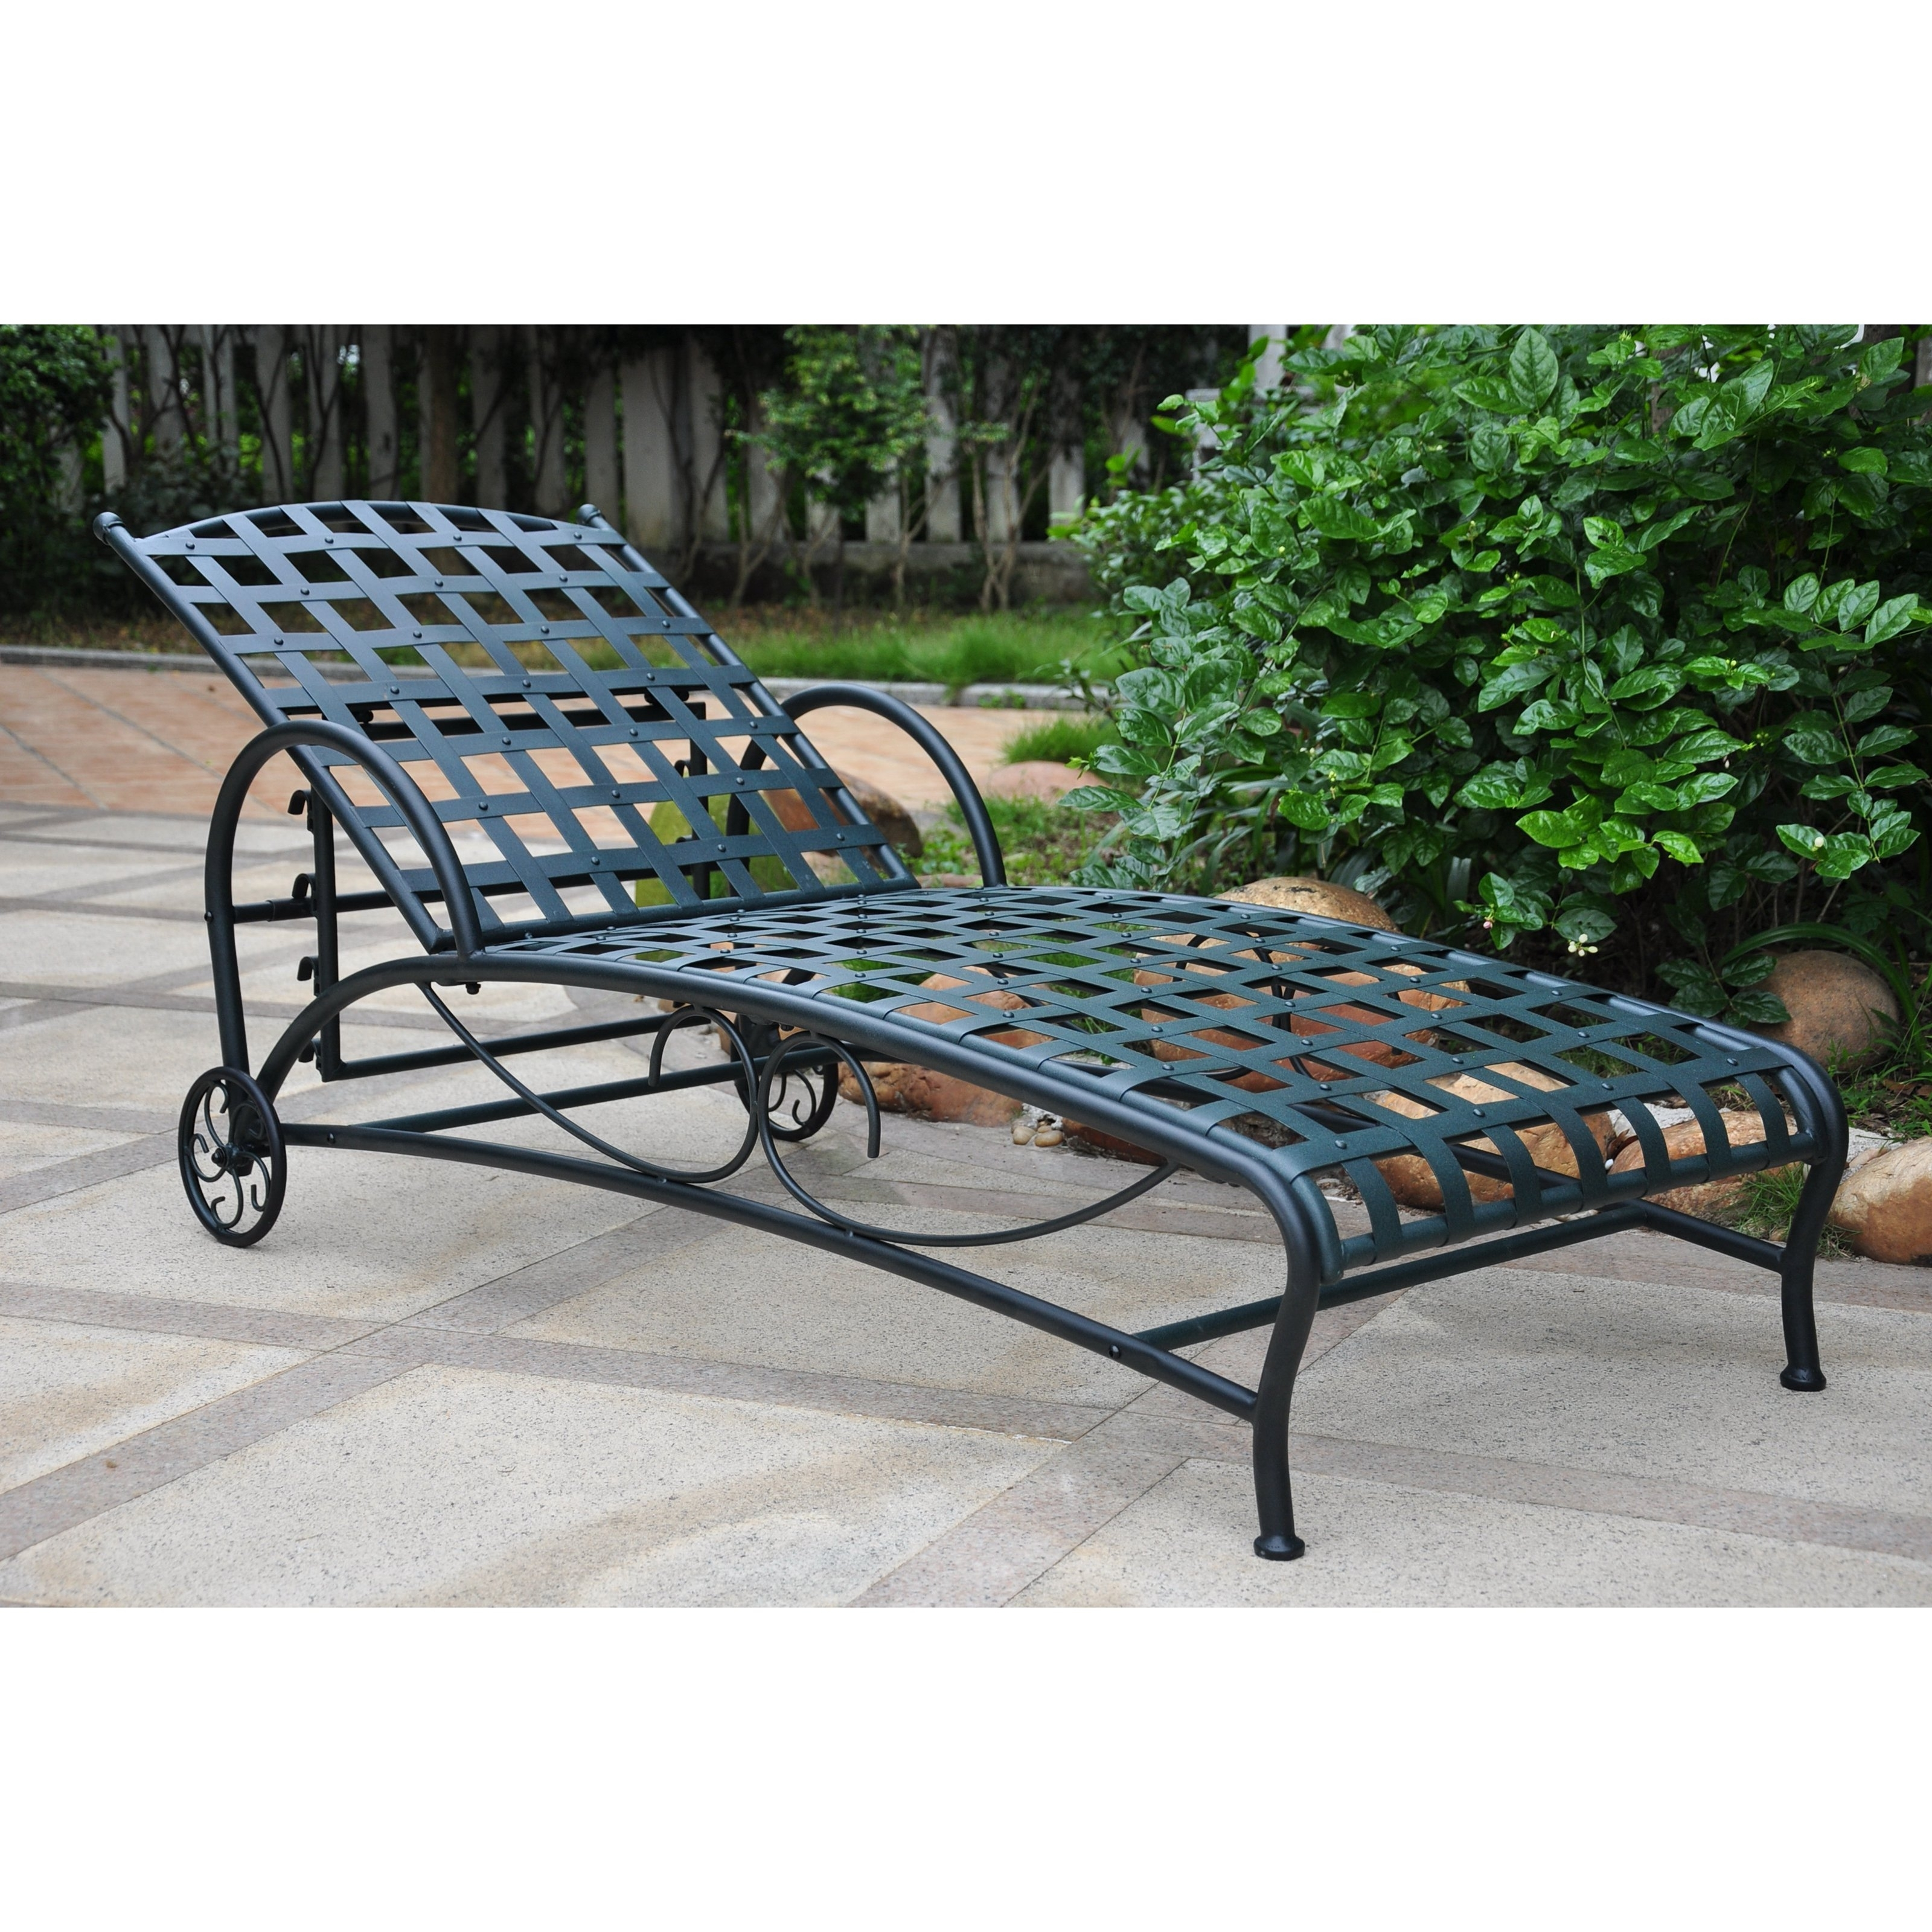 Wrought Iron Chaise Lounges In Most Up To Date Belham Living Capri Wrought Iron Multi Position Single Outdoor (View 10 of 15)